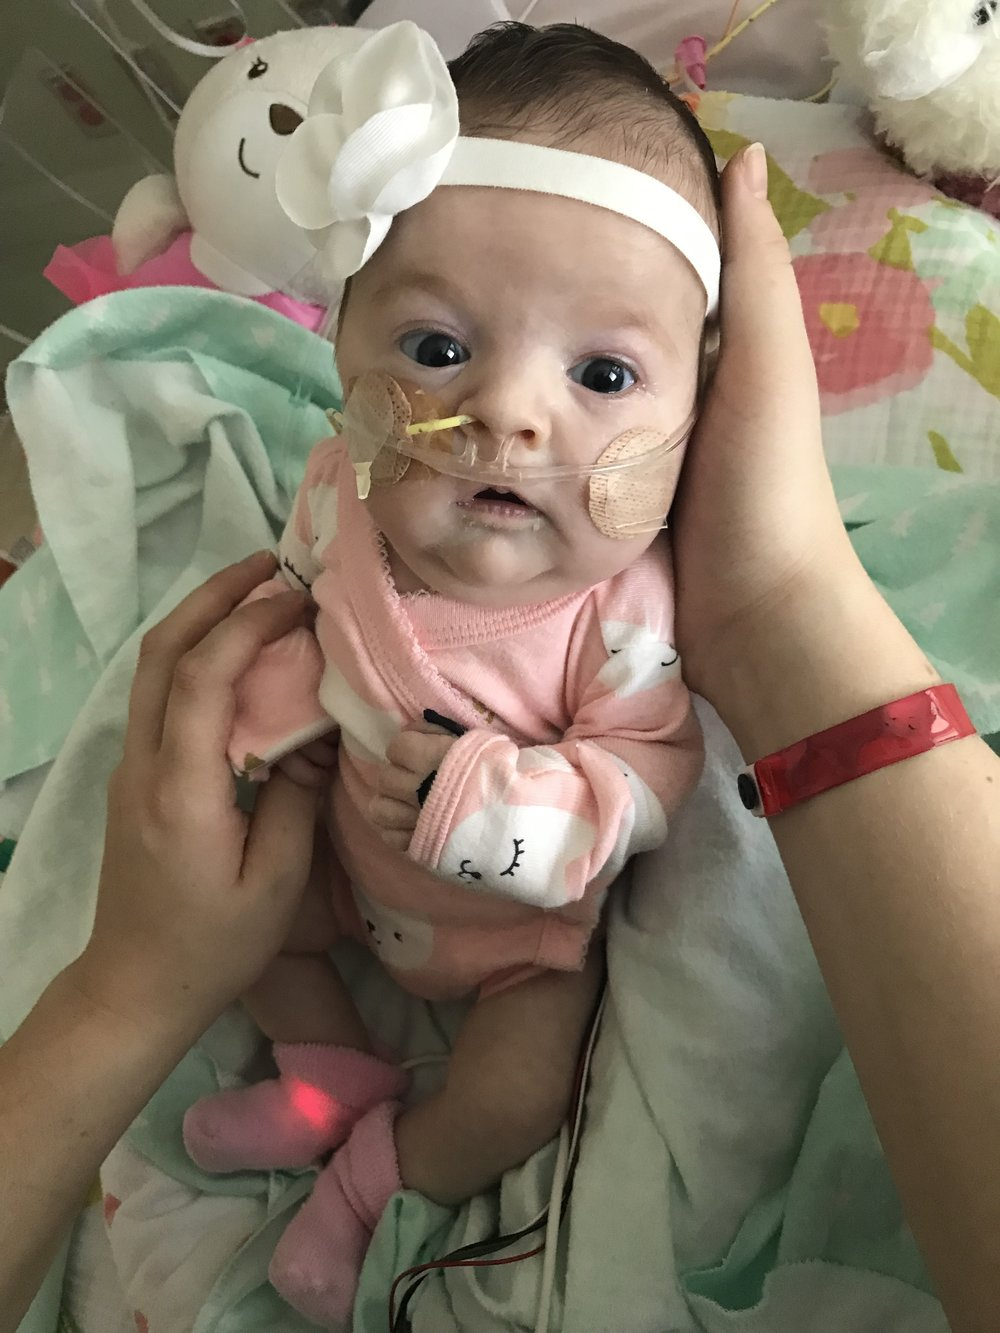 One month after her first surgery.